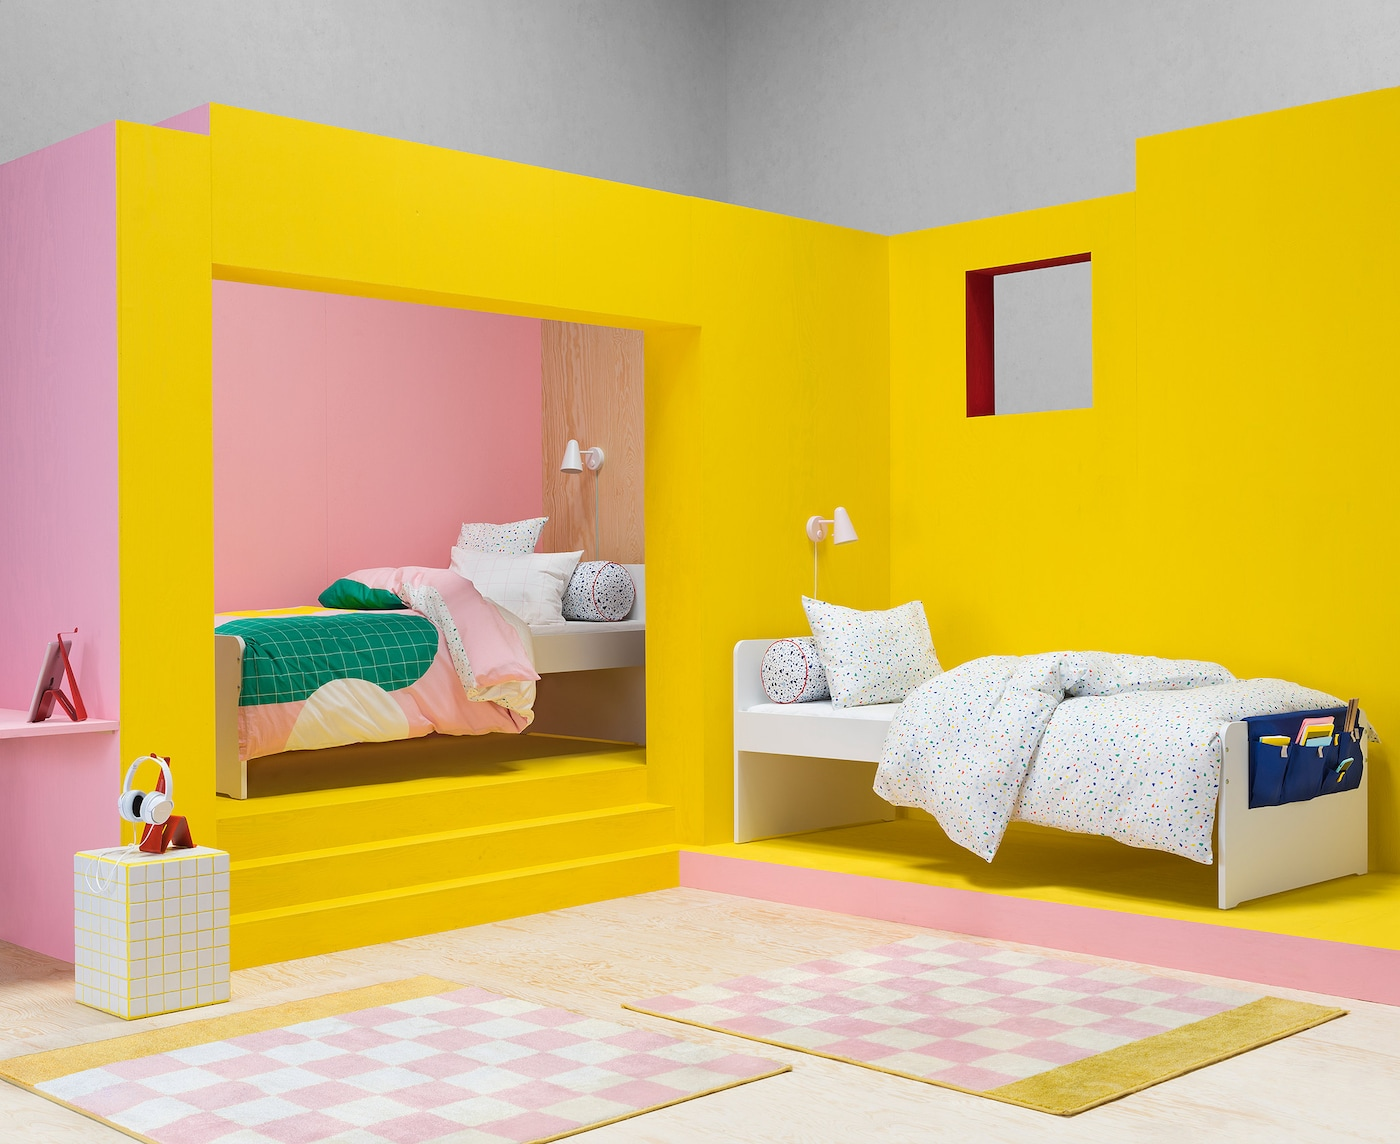 Two single beds with MÖJLIGHET children's textiles standing in a room with bold yellow walls and colourful rugs.